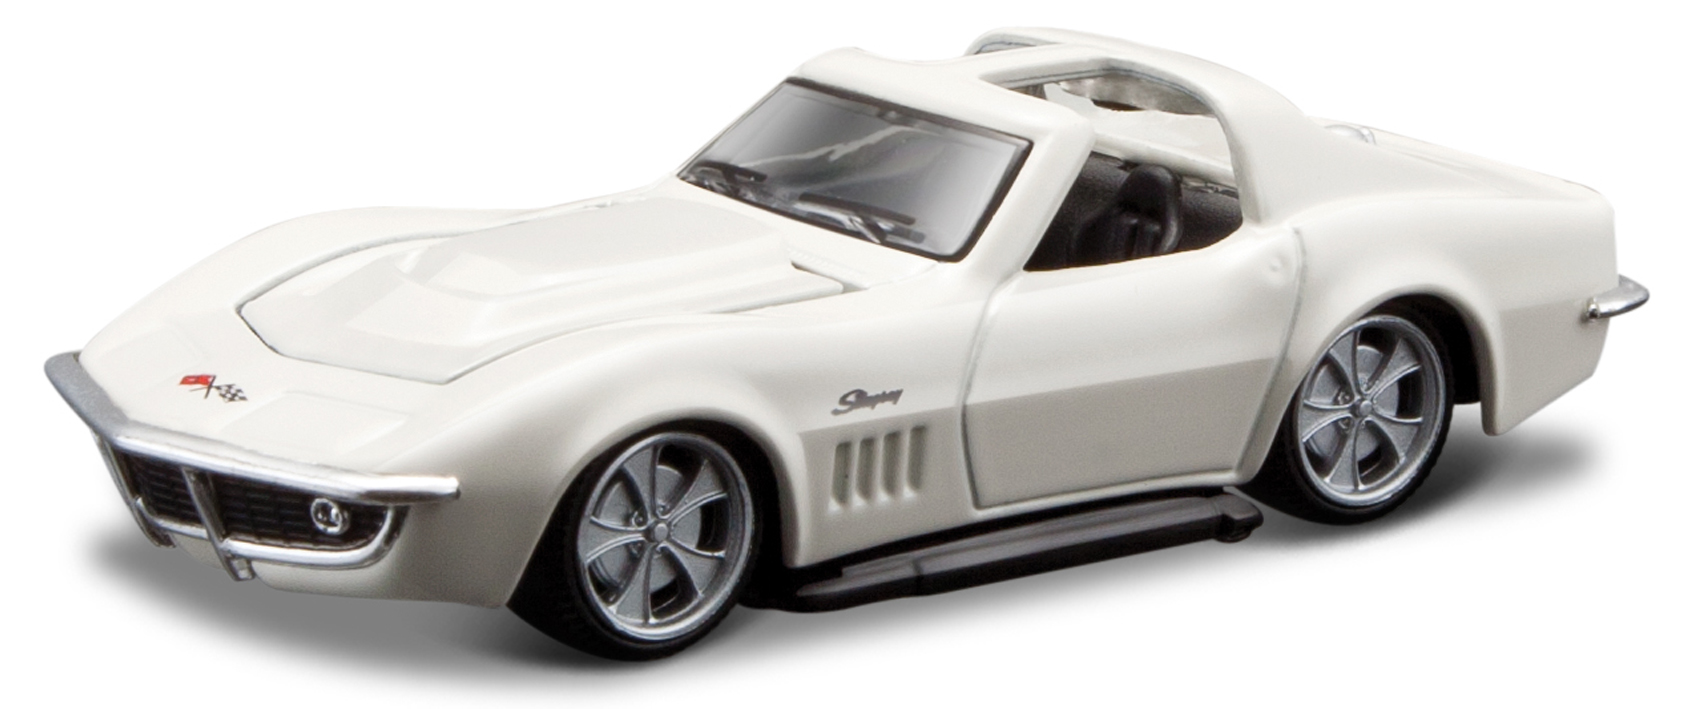 Chevrolet Corvette Coupe 1969 Scale 1:64 (White/Branco)